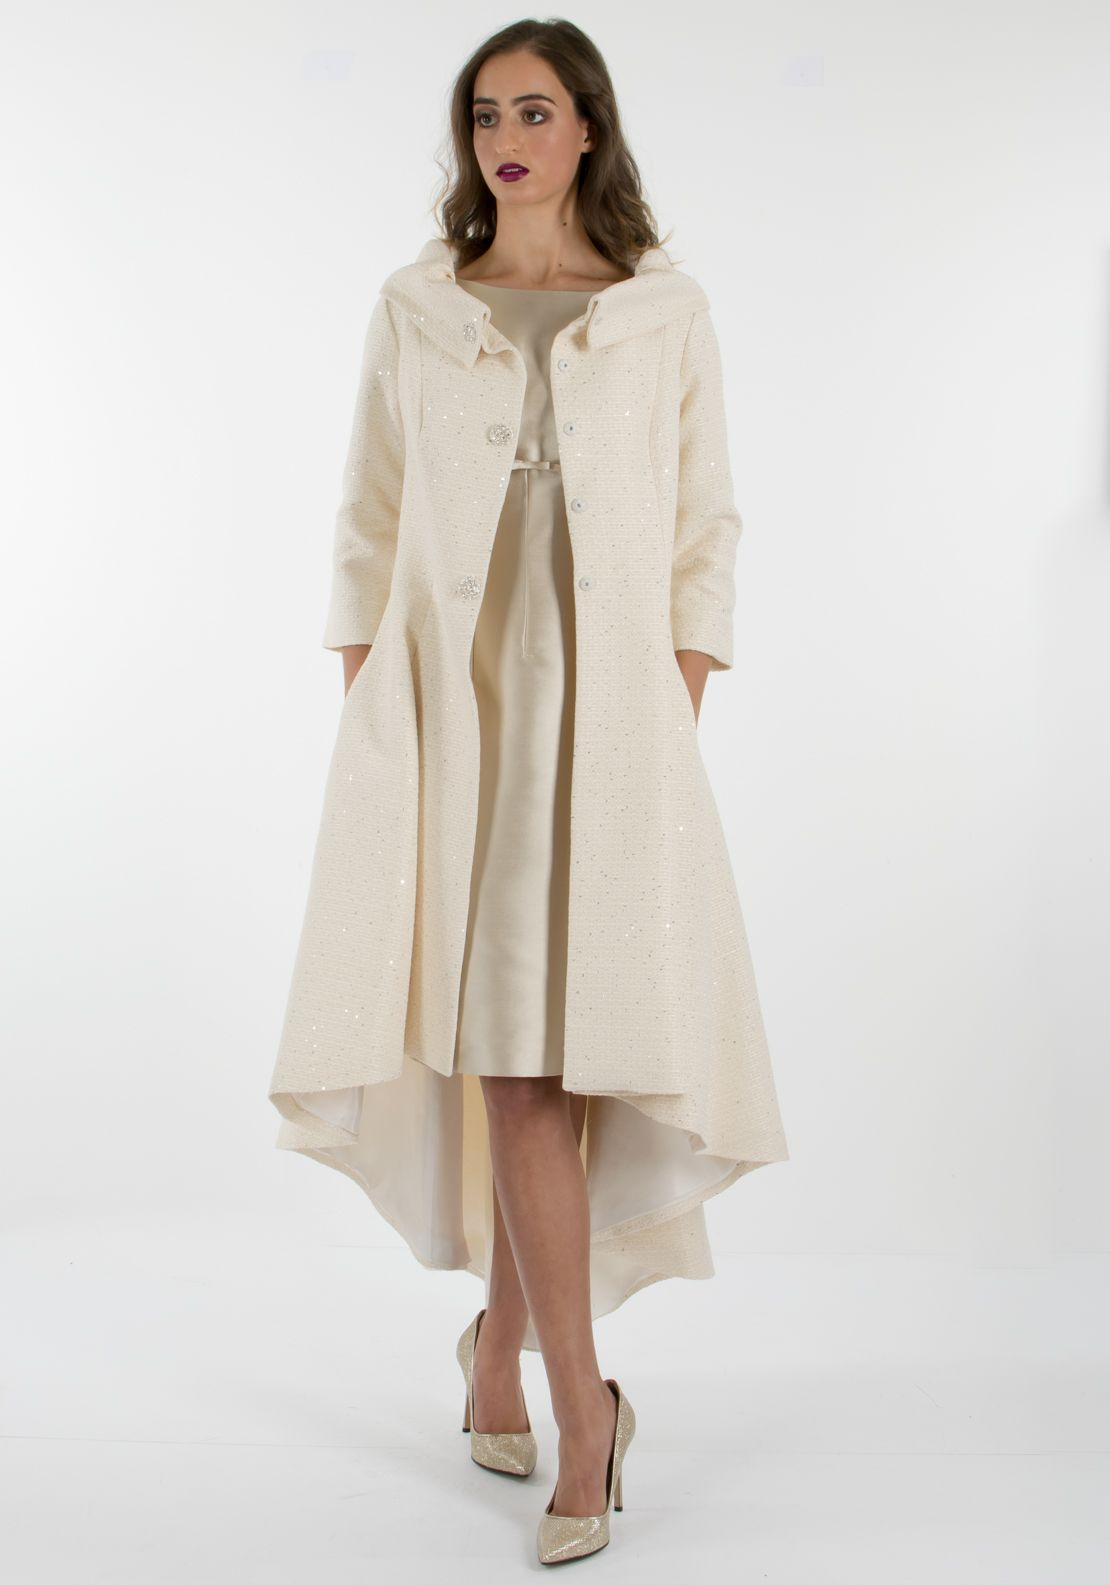 Fely Campo Silk Dress & Coat Outfit | Mother of the ...